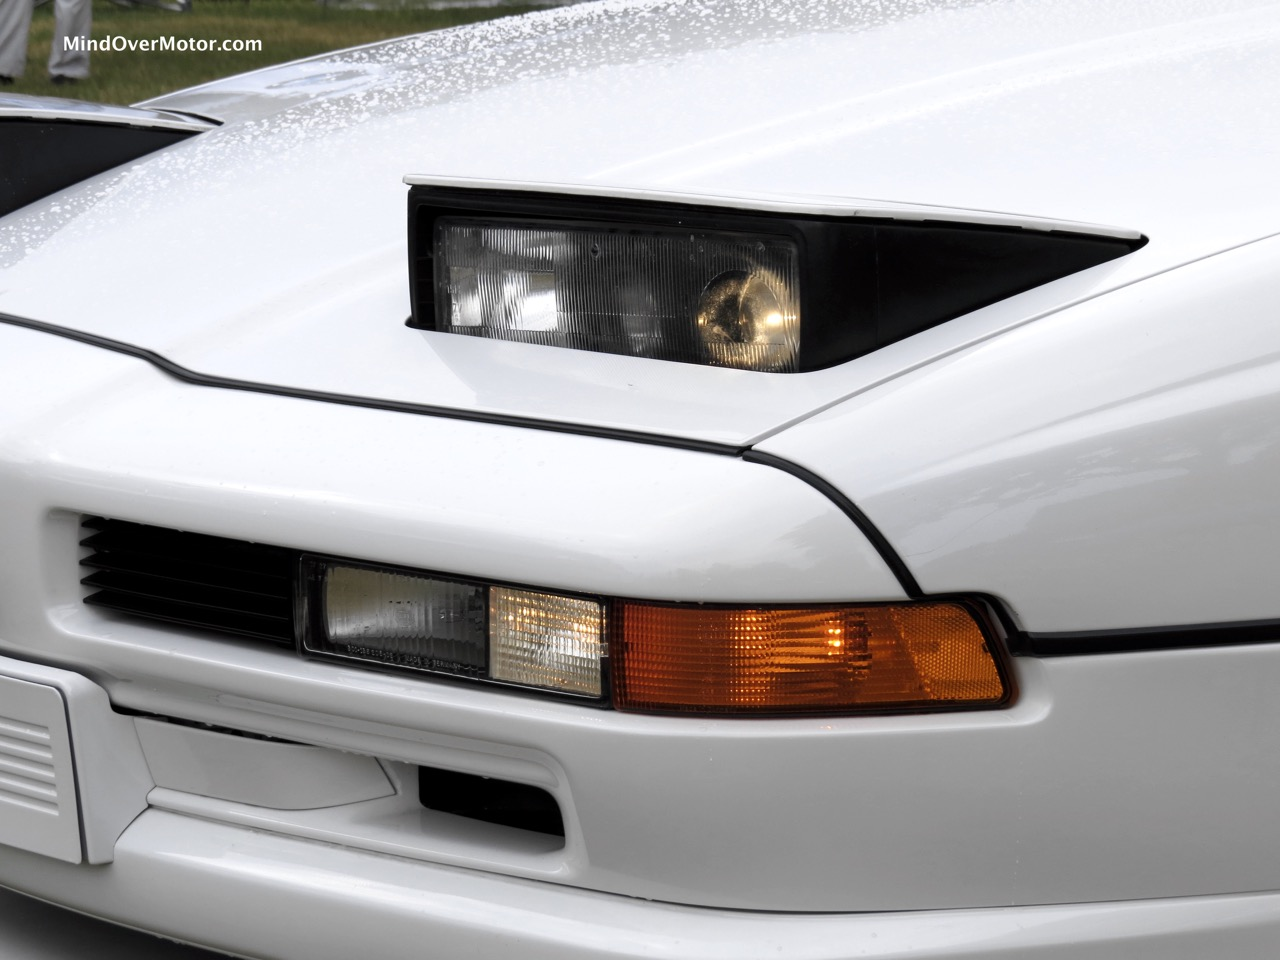 BMW 850CSi Headlight